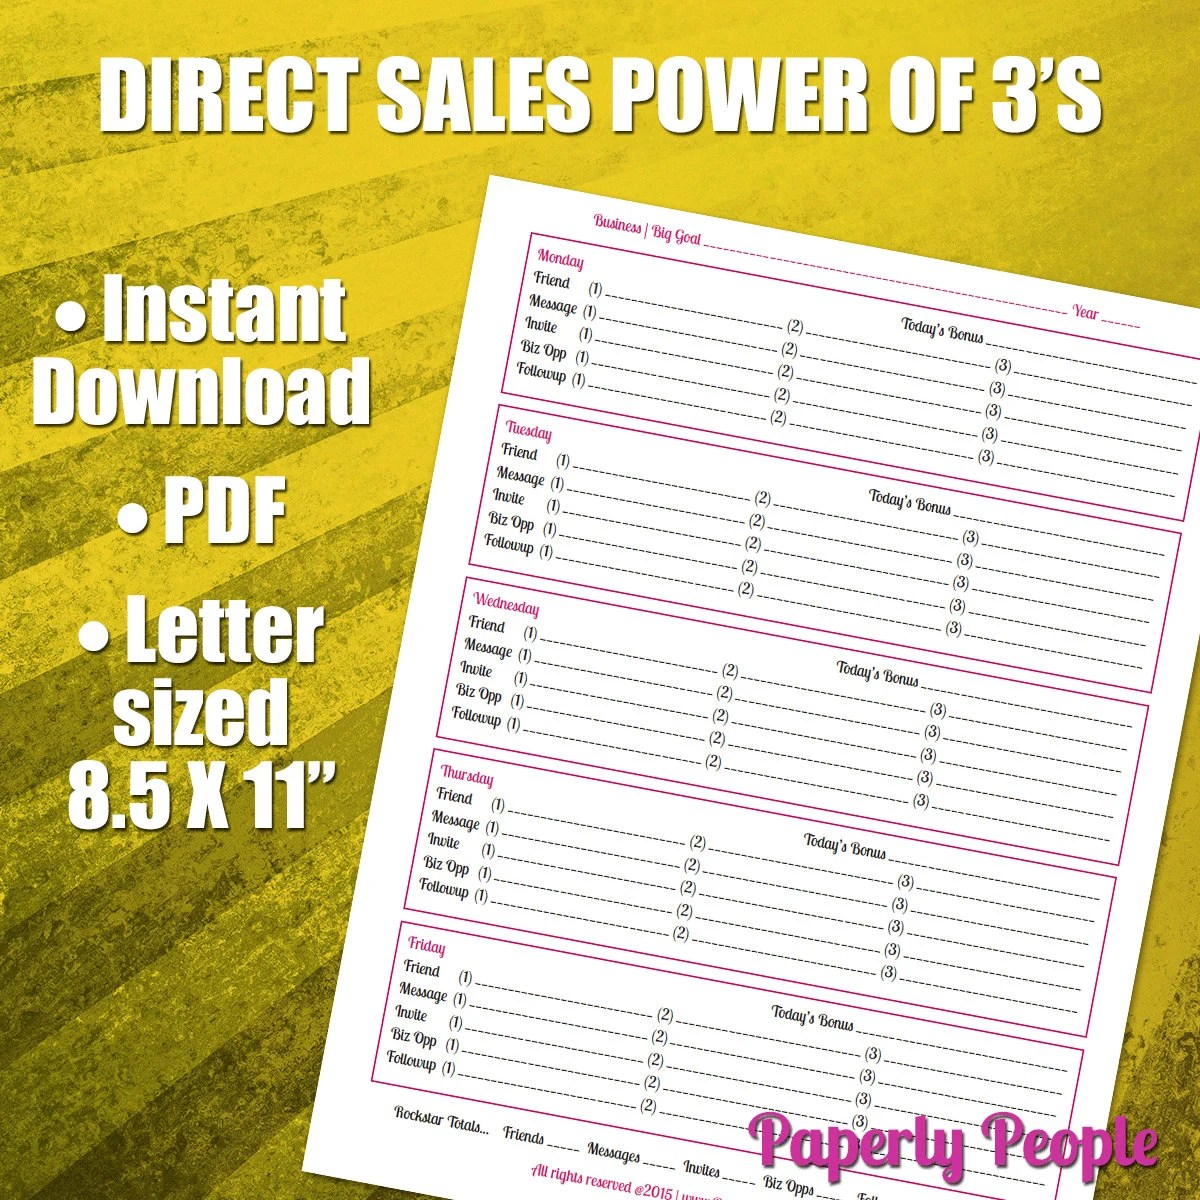 Direct Sales Worksheet The Power Of 3s Network Marketing